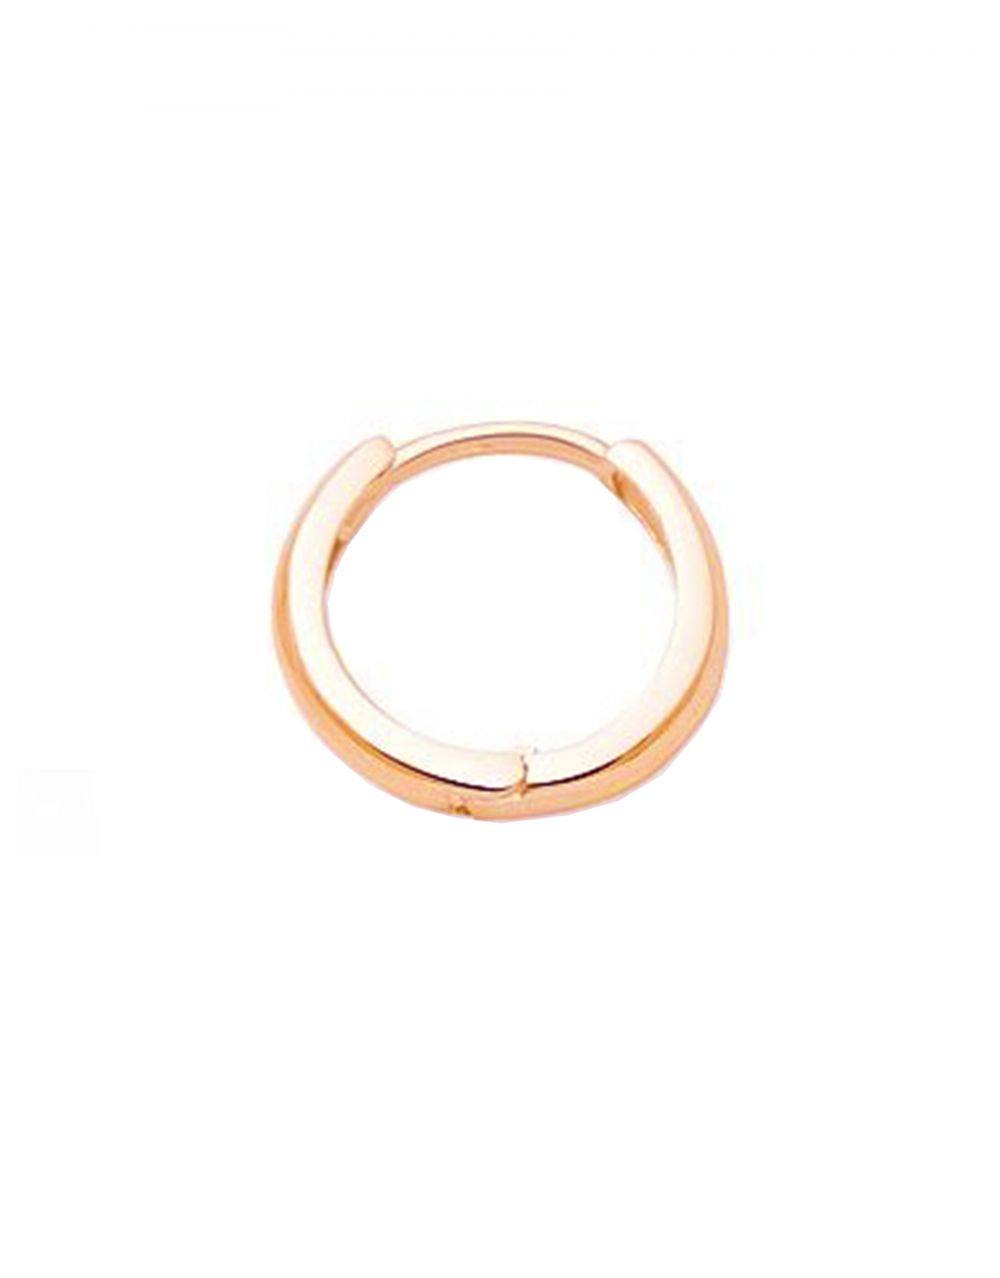 Mini Gold Hoop Piercing<br /><i><small>14K Rose Gold</small></i><br />